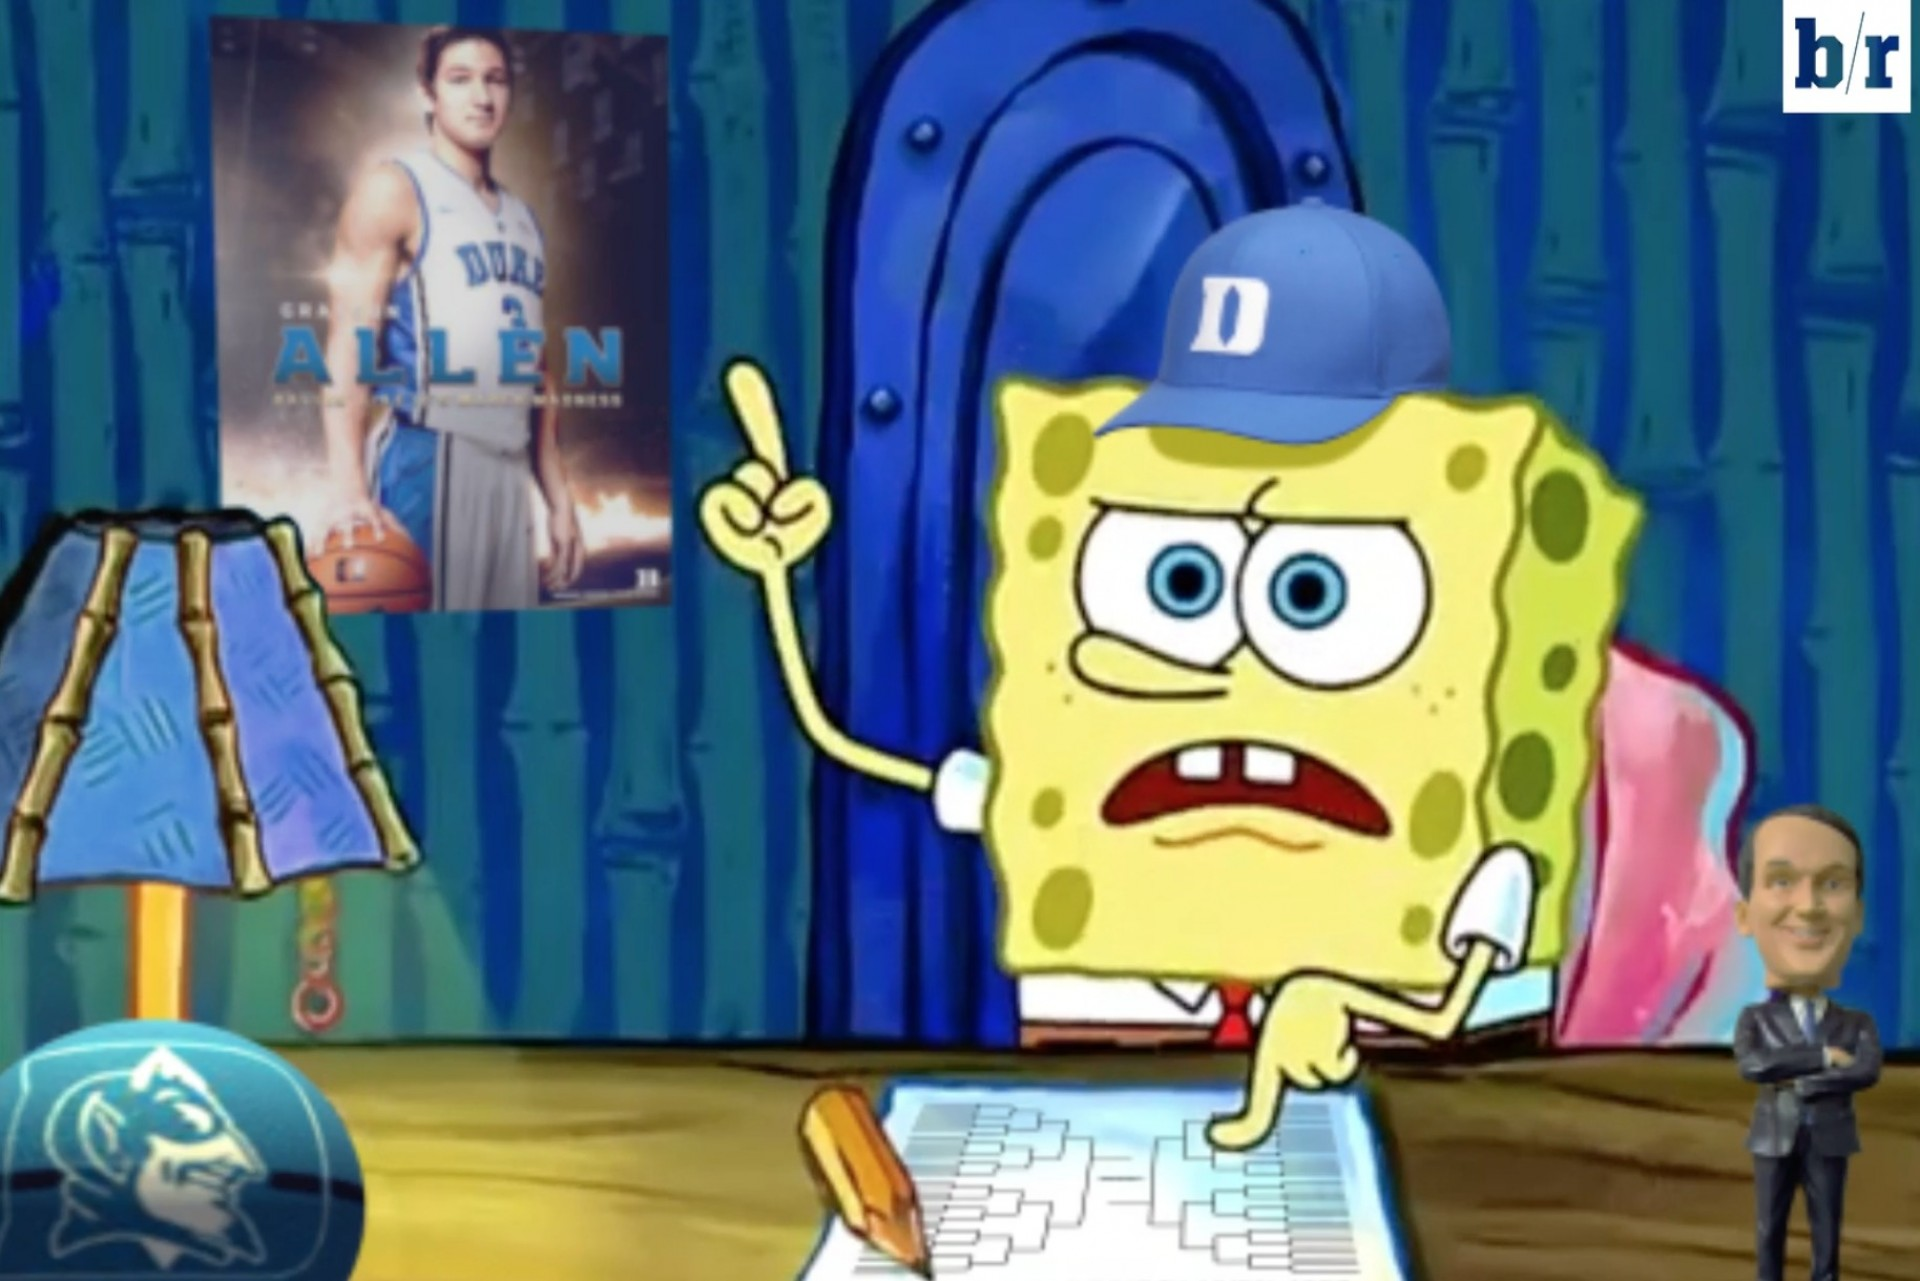 011 Essay Example Duke Fan Spongebob Squarepants Fills Out Ncaa Bracket In Parody Of Writing Gif Crop Exact Screen Shot 2017 For Hours Font Meme Rap Remarkable 1920